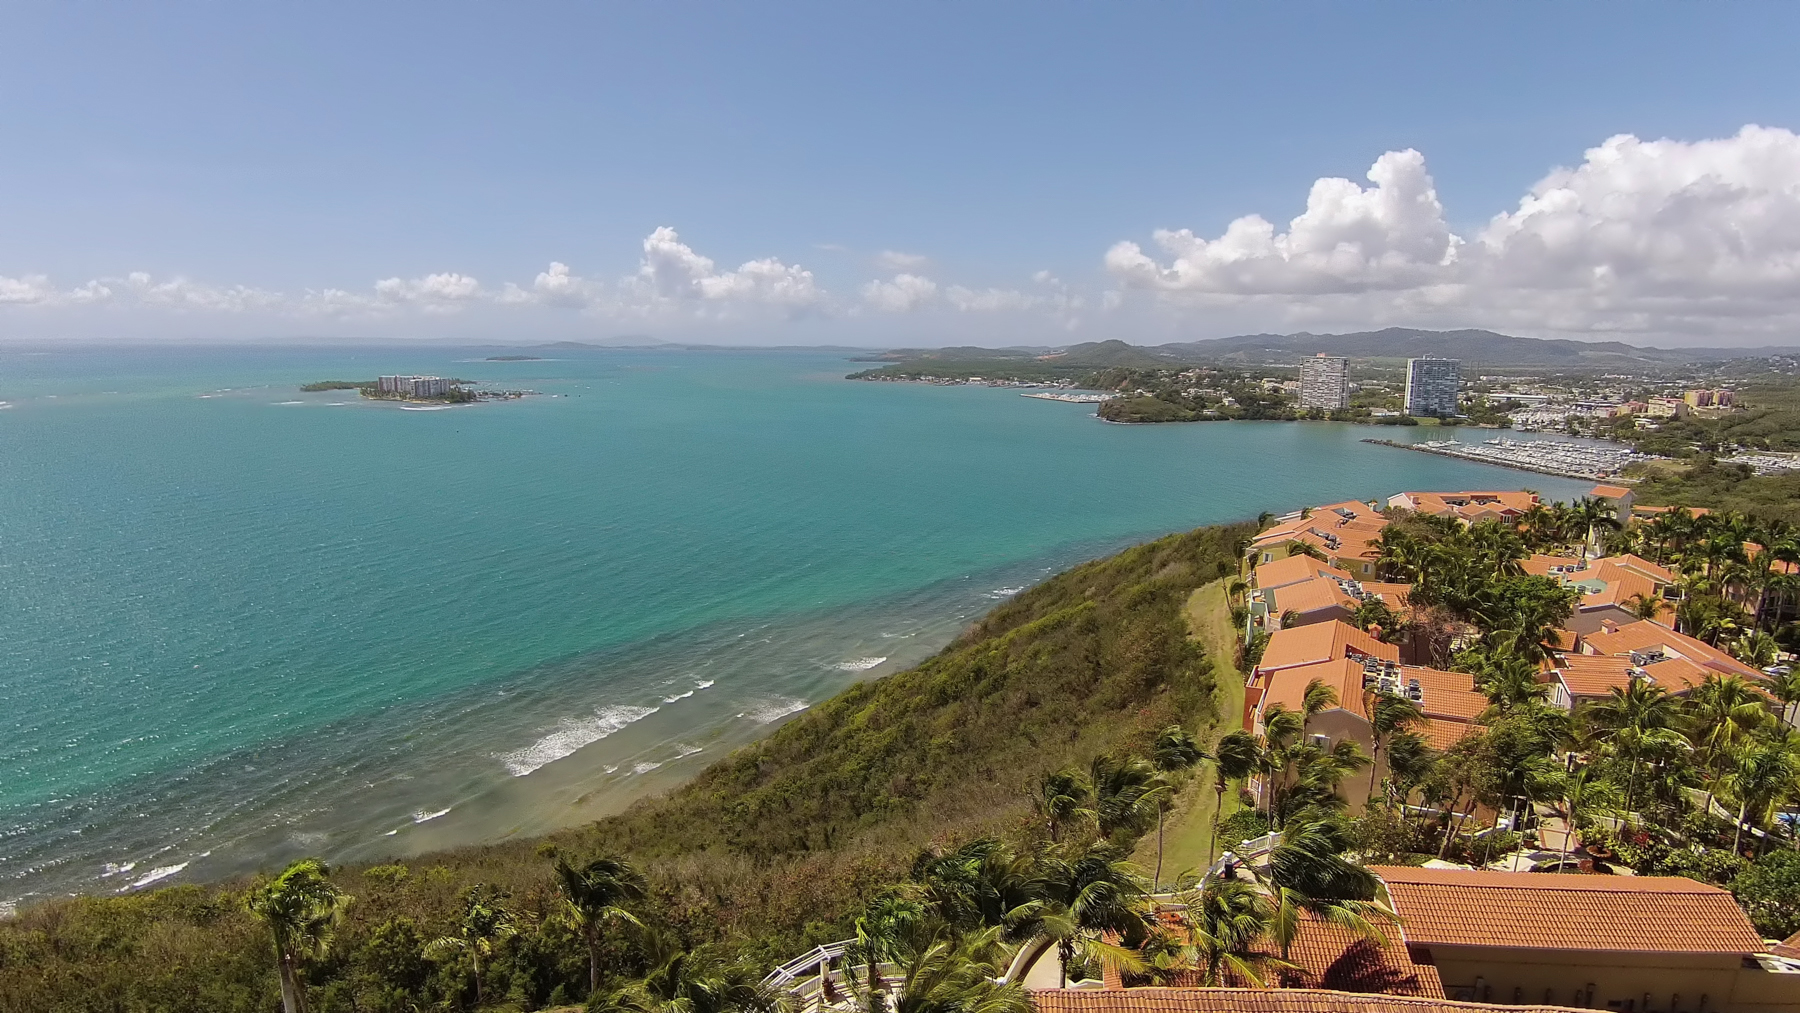 Квартира для того Продажа на Waterfront Villa at A Waldorf Astoria Resort 1000 El Conquistador Ave Las Casitas II Apt. 108 Fajardo, Puerto Rico 00738 Пуэрто-Рико